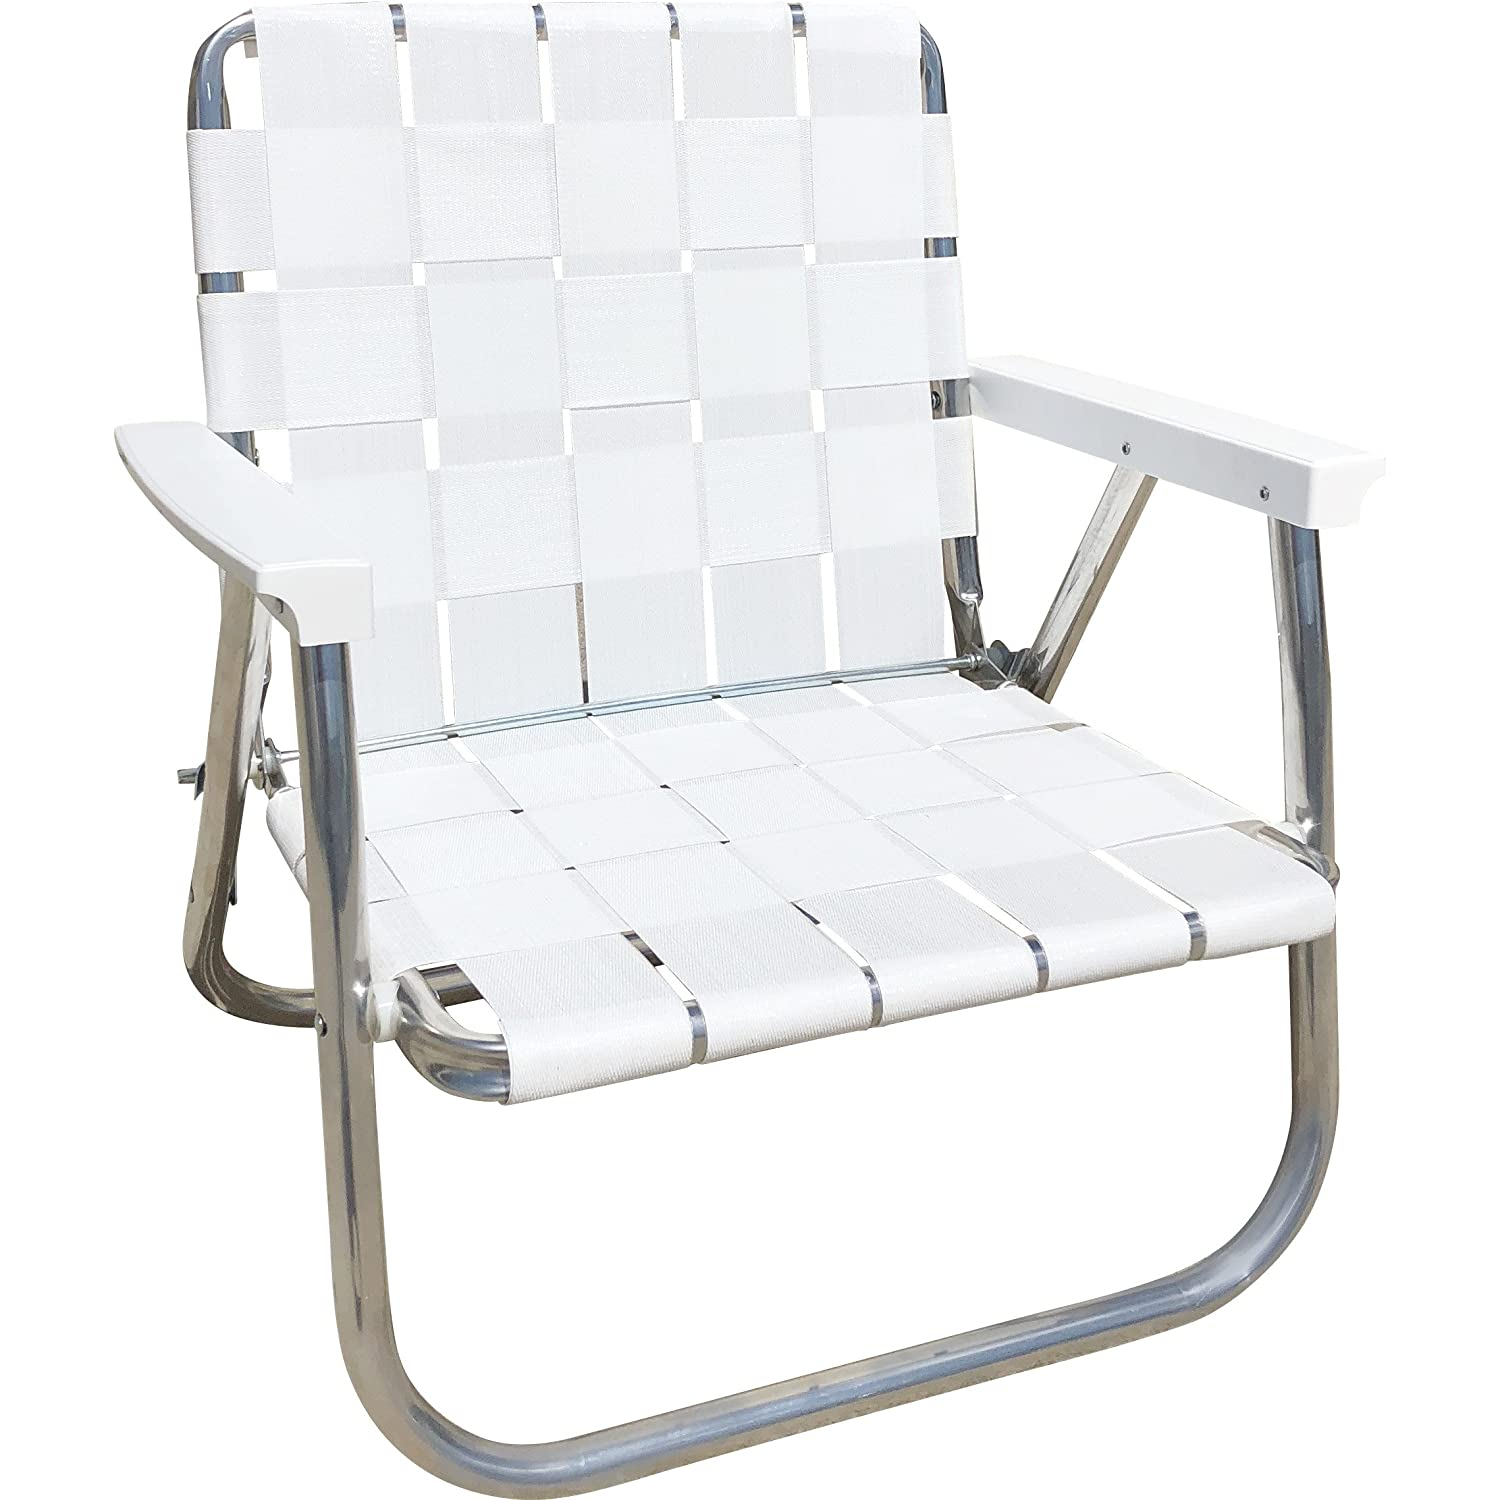 Bright White Low Back Beach Chair Lawn Chair USA Aluminum Webbed Chair (Deluxe, Bright White)